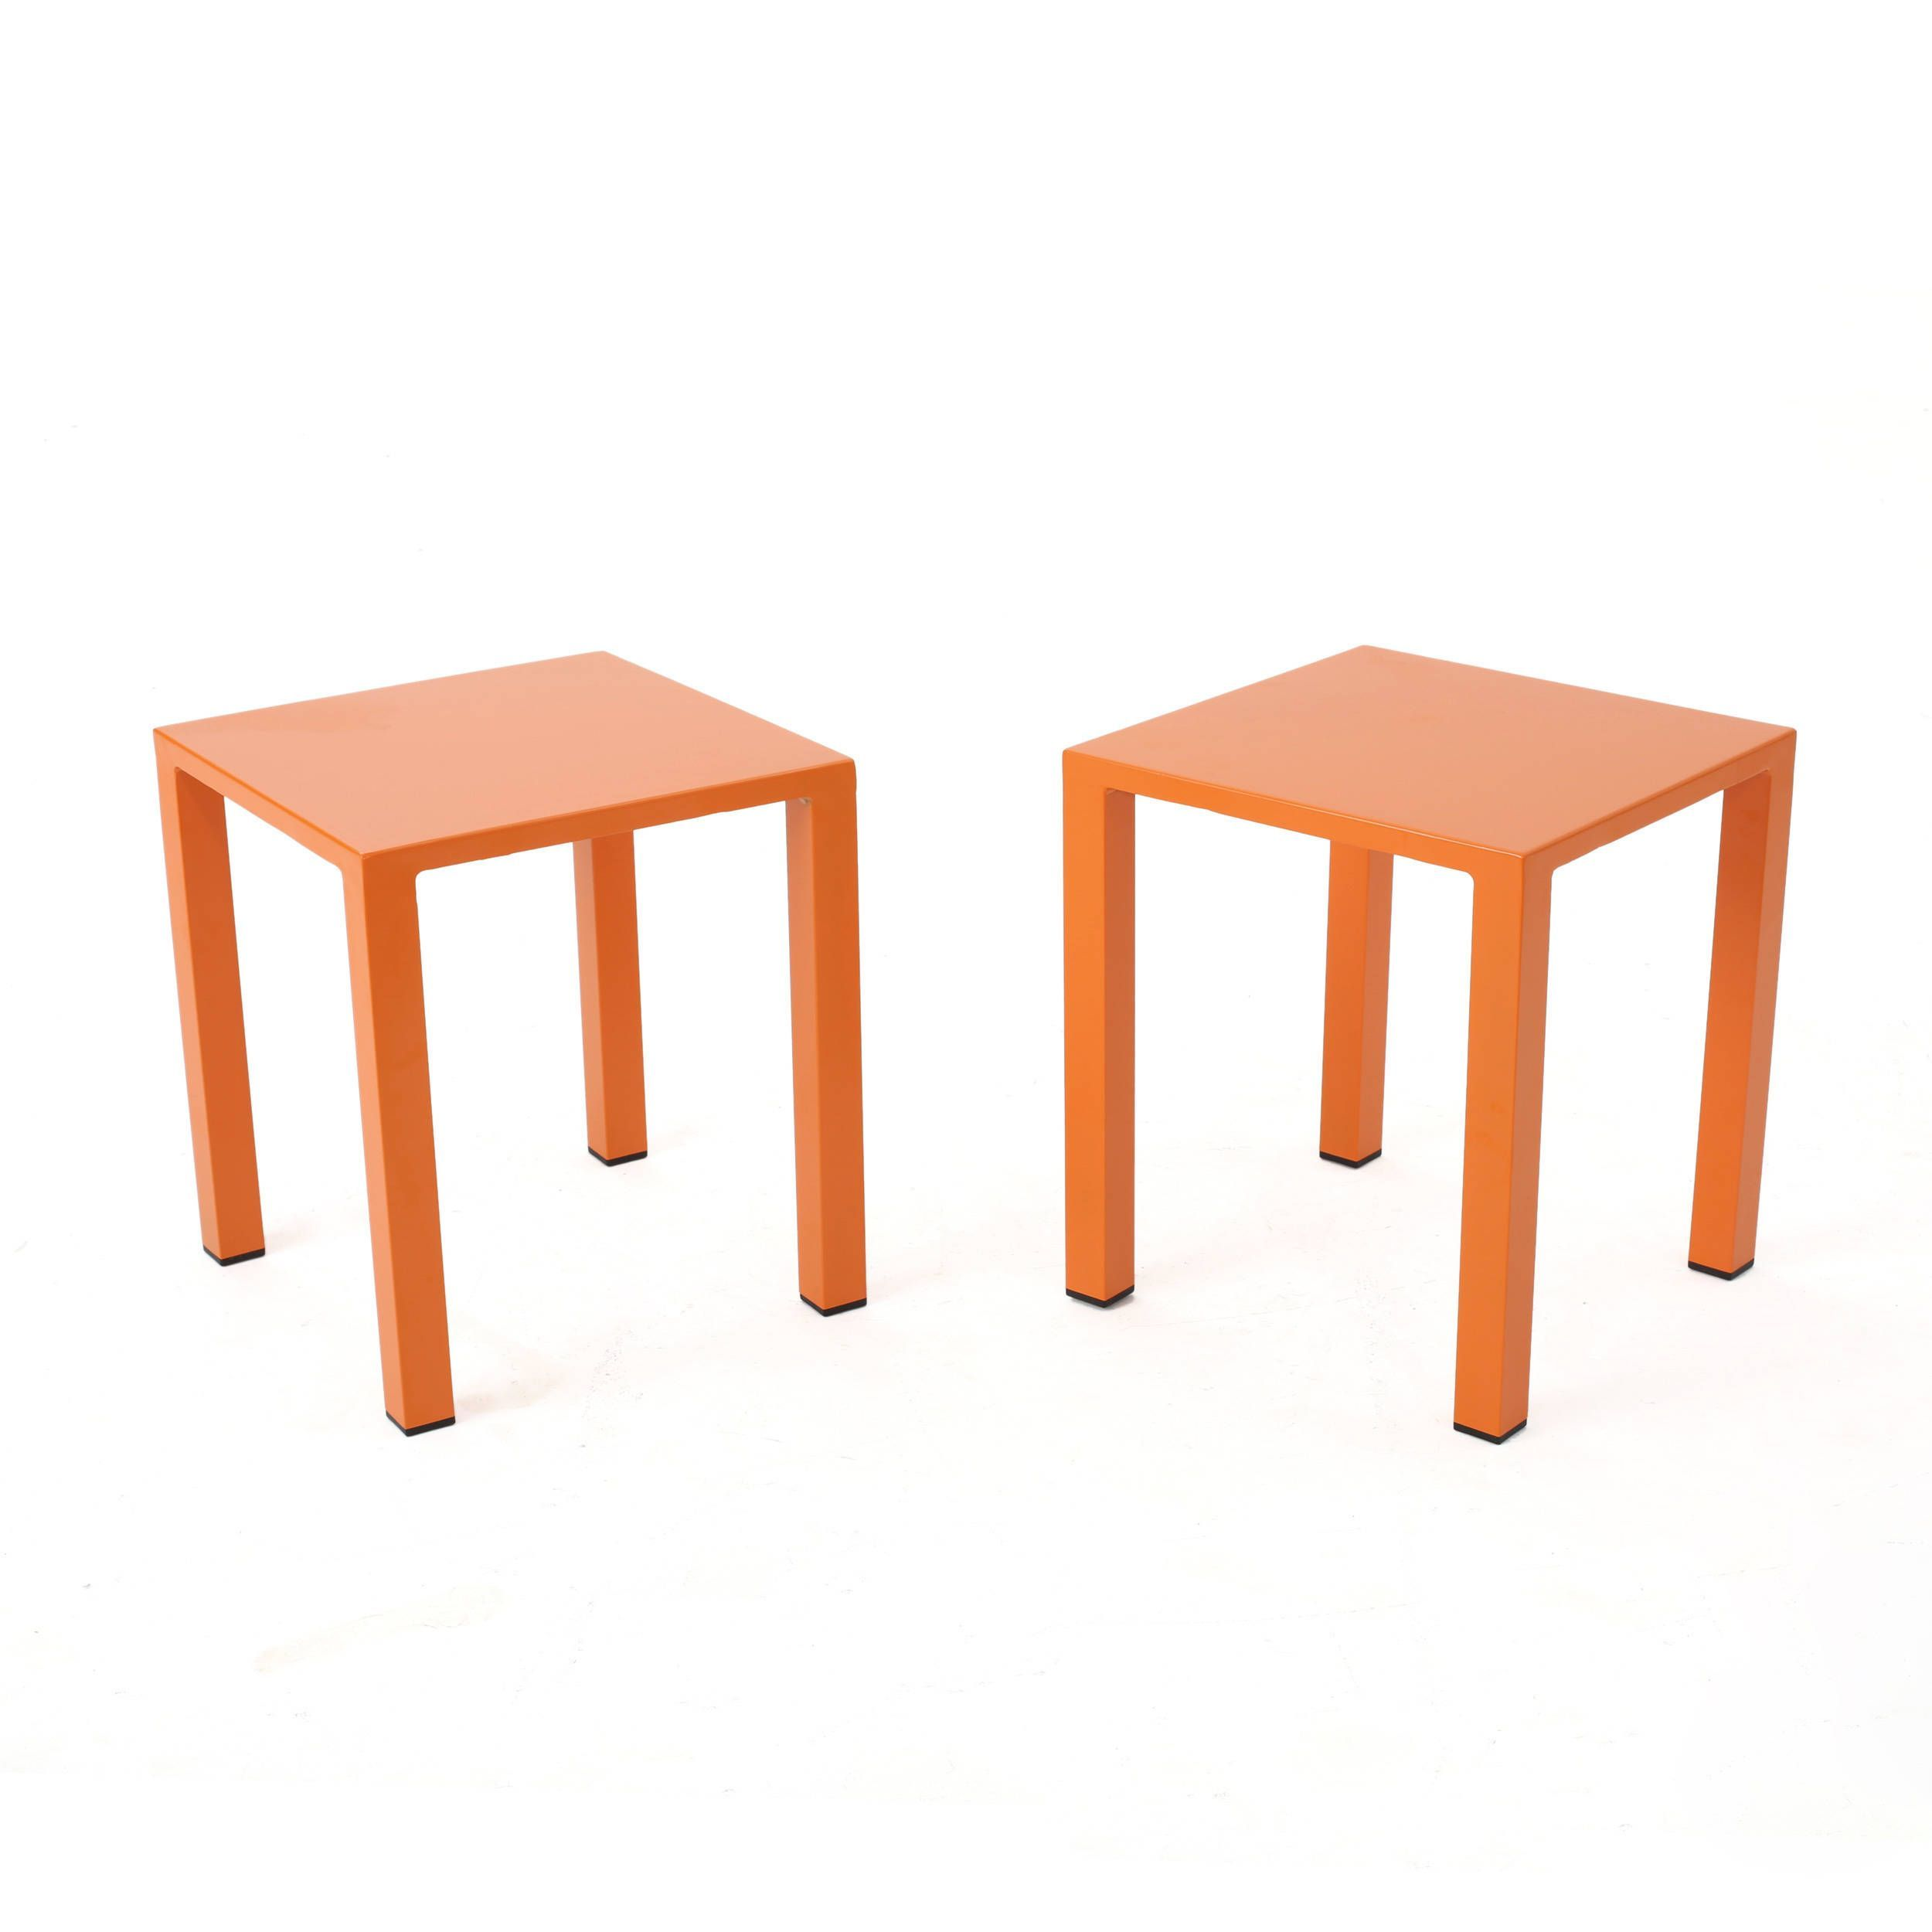 windsdor outdoor inch square aluminum side table set orange christopher knight home lime green multi patio furniture red living room decor tables for small spaces goods kitchen